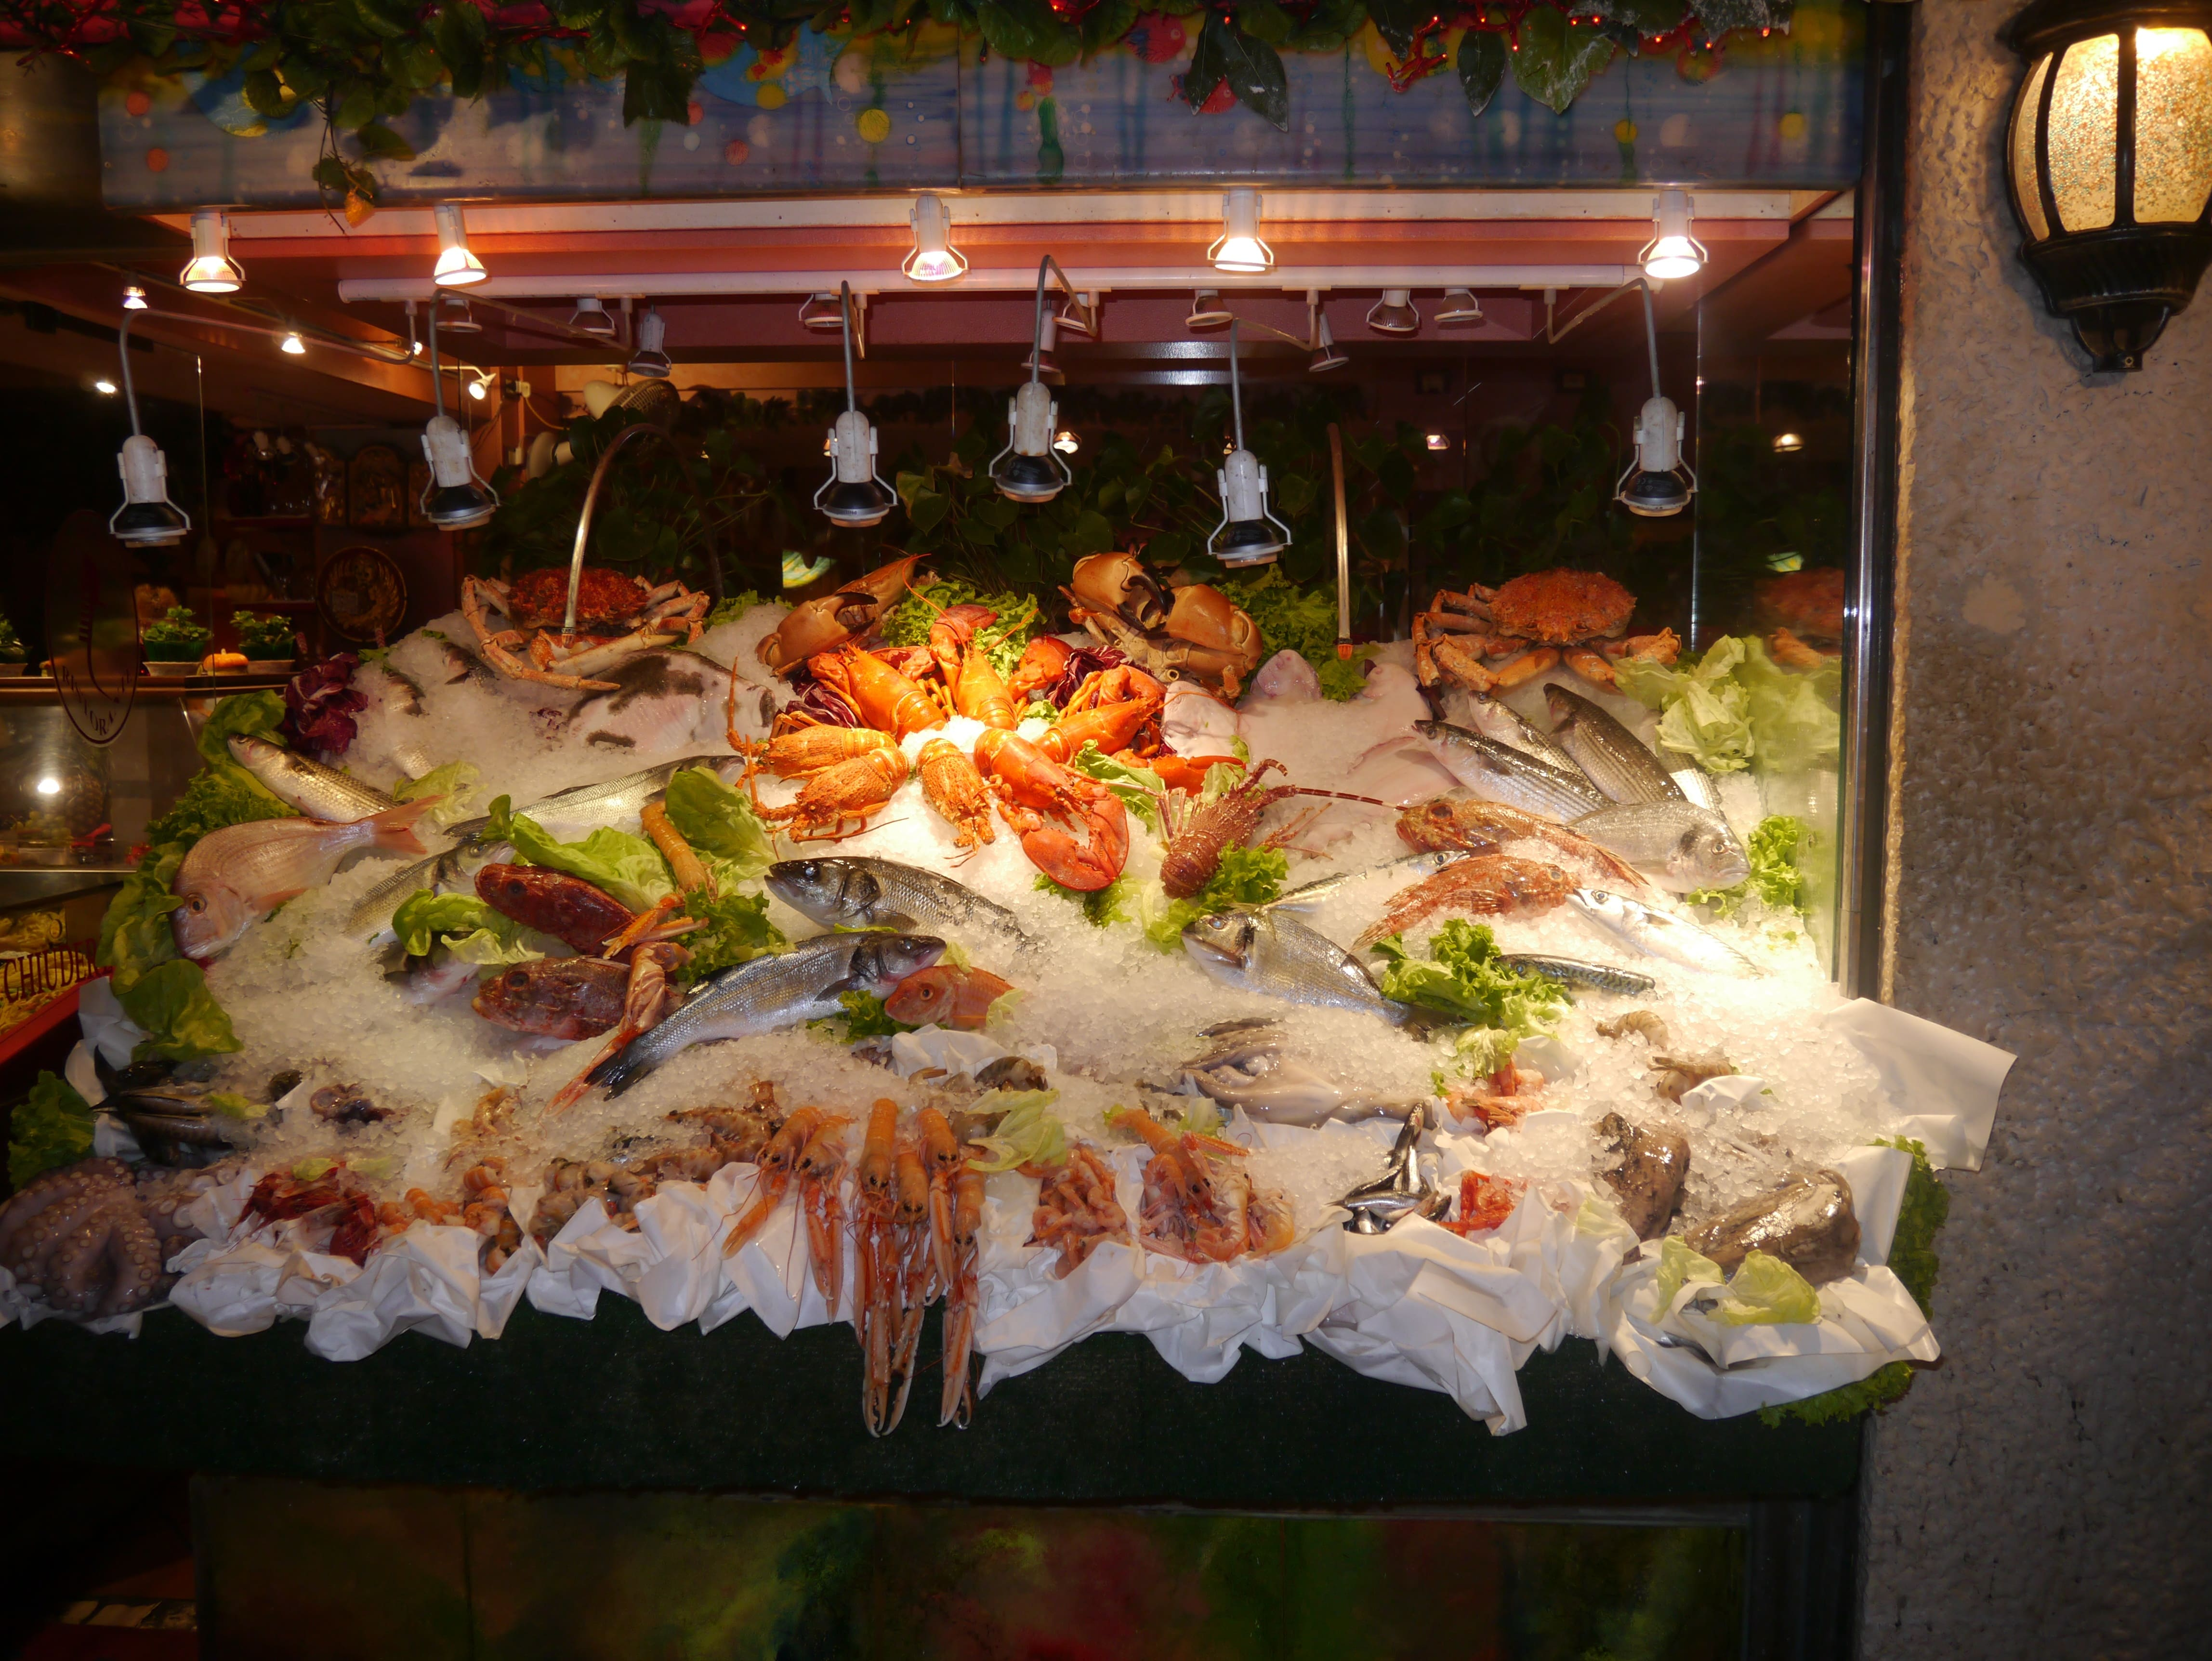 Indulging in seafood in Venice is an awesome thing to do in Italy